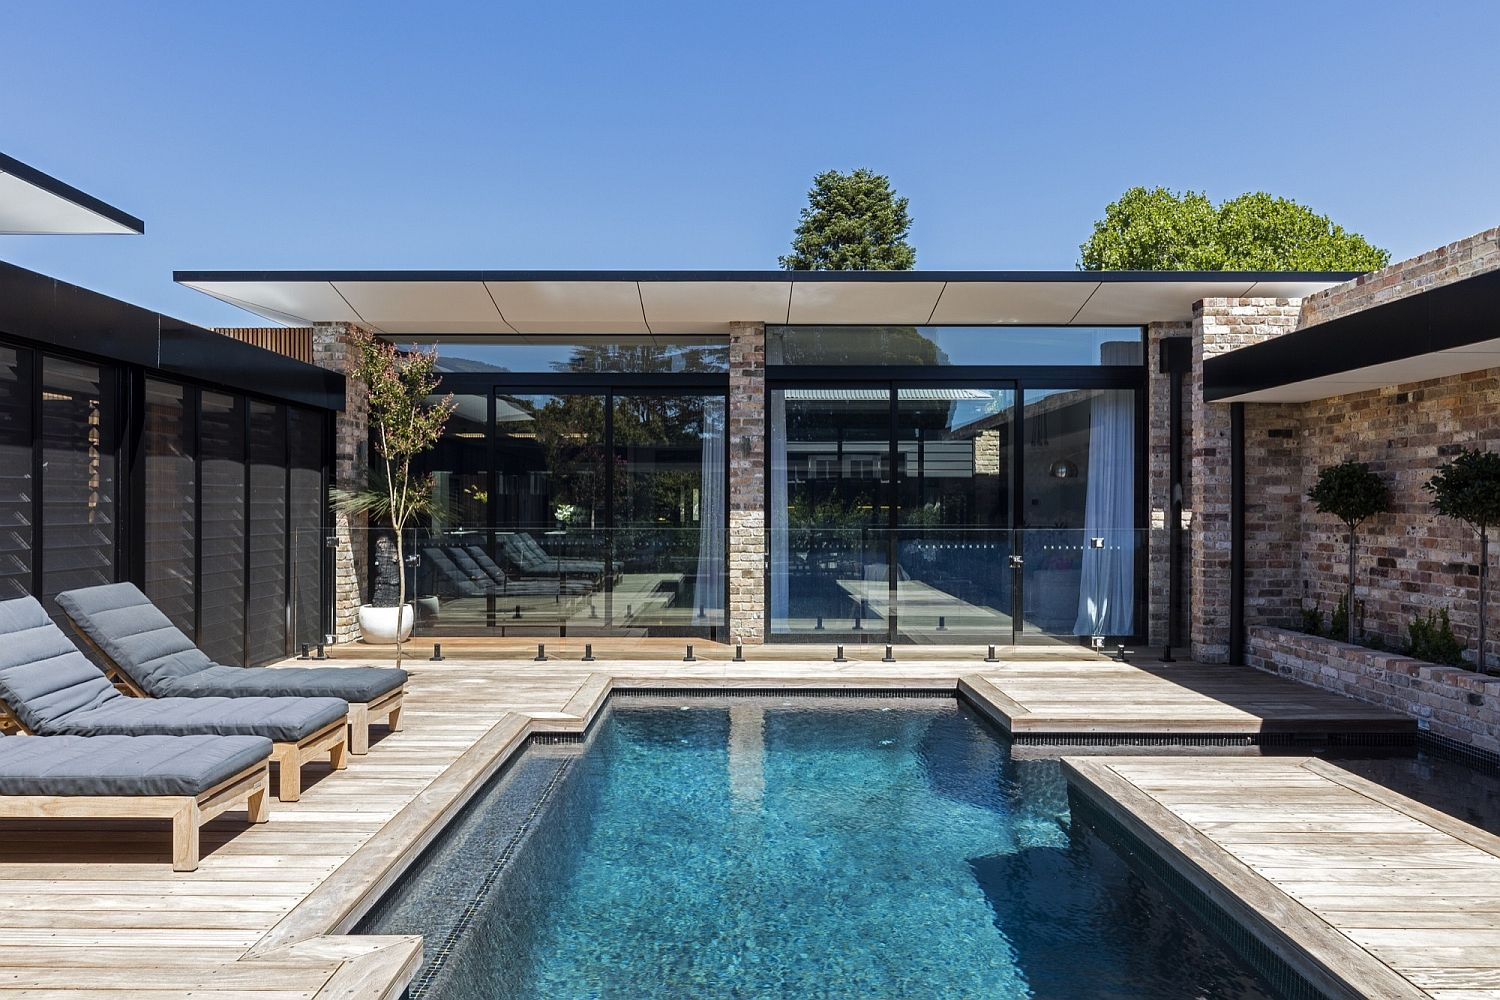 Wooden deck and pool area of the Bundaroo House